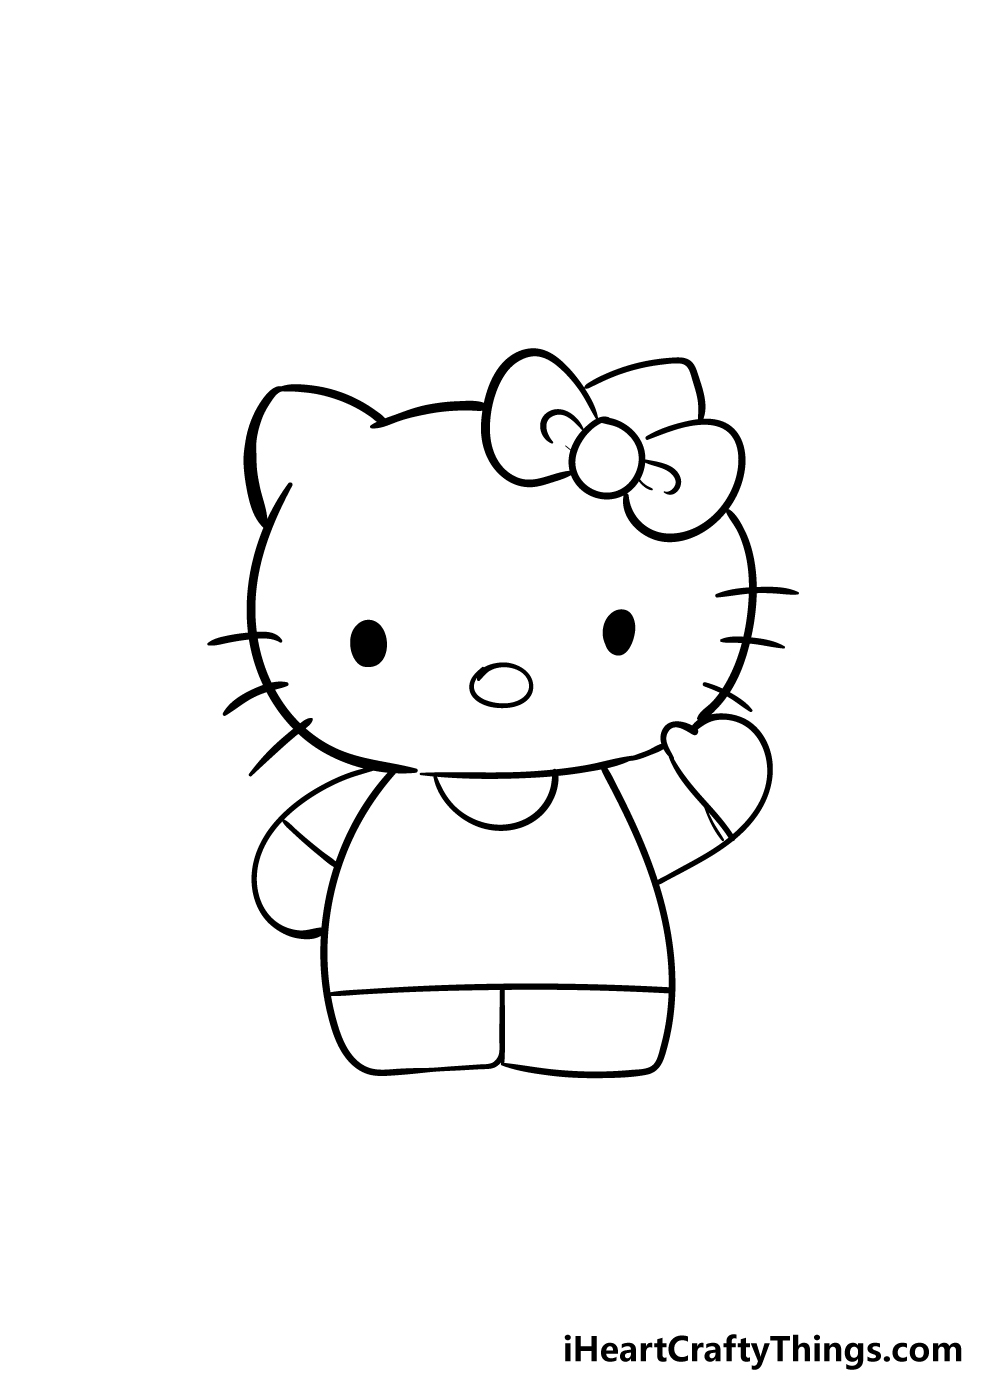 hello kitty drawing step 5